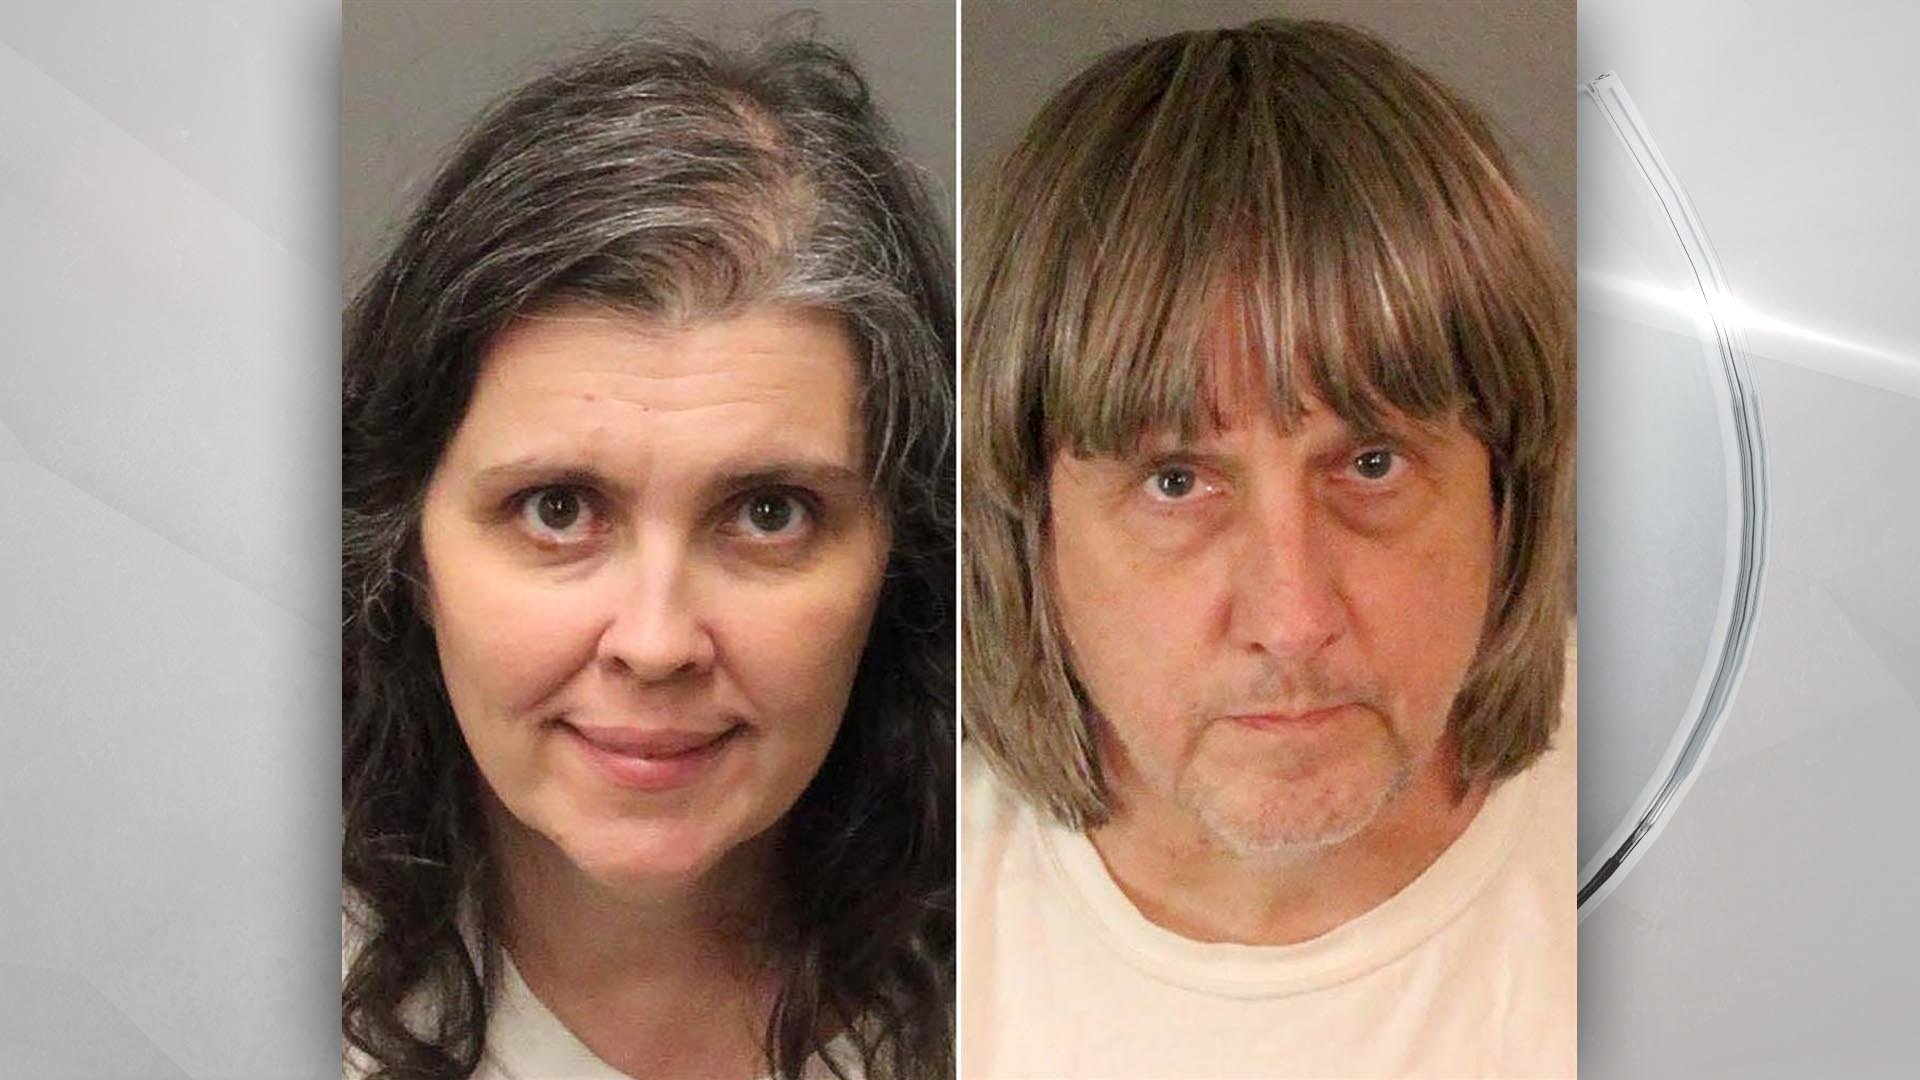 Children Hospitalized, Parents Jailed on Torture Charges